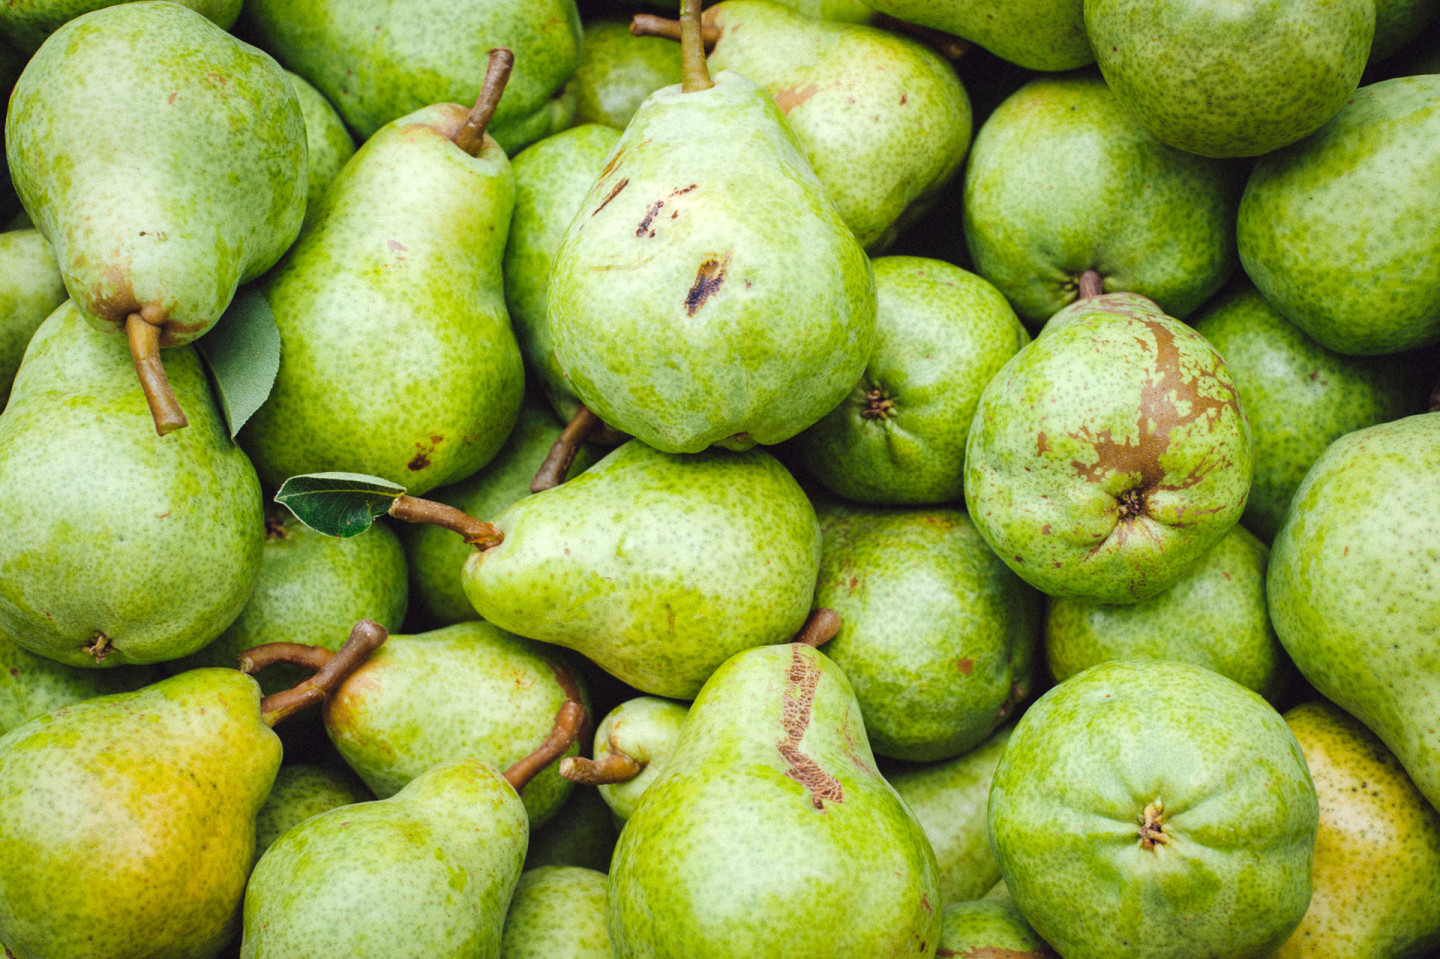 """Pears with cosmetic blemishes such as """"limb rub"""" -- surface imperfections that have nothing to do with quality or taste -- wind up in a different market category. Cynthia E. Wood/KQED"""